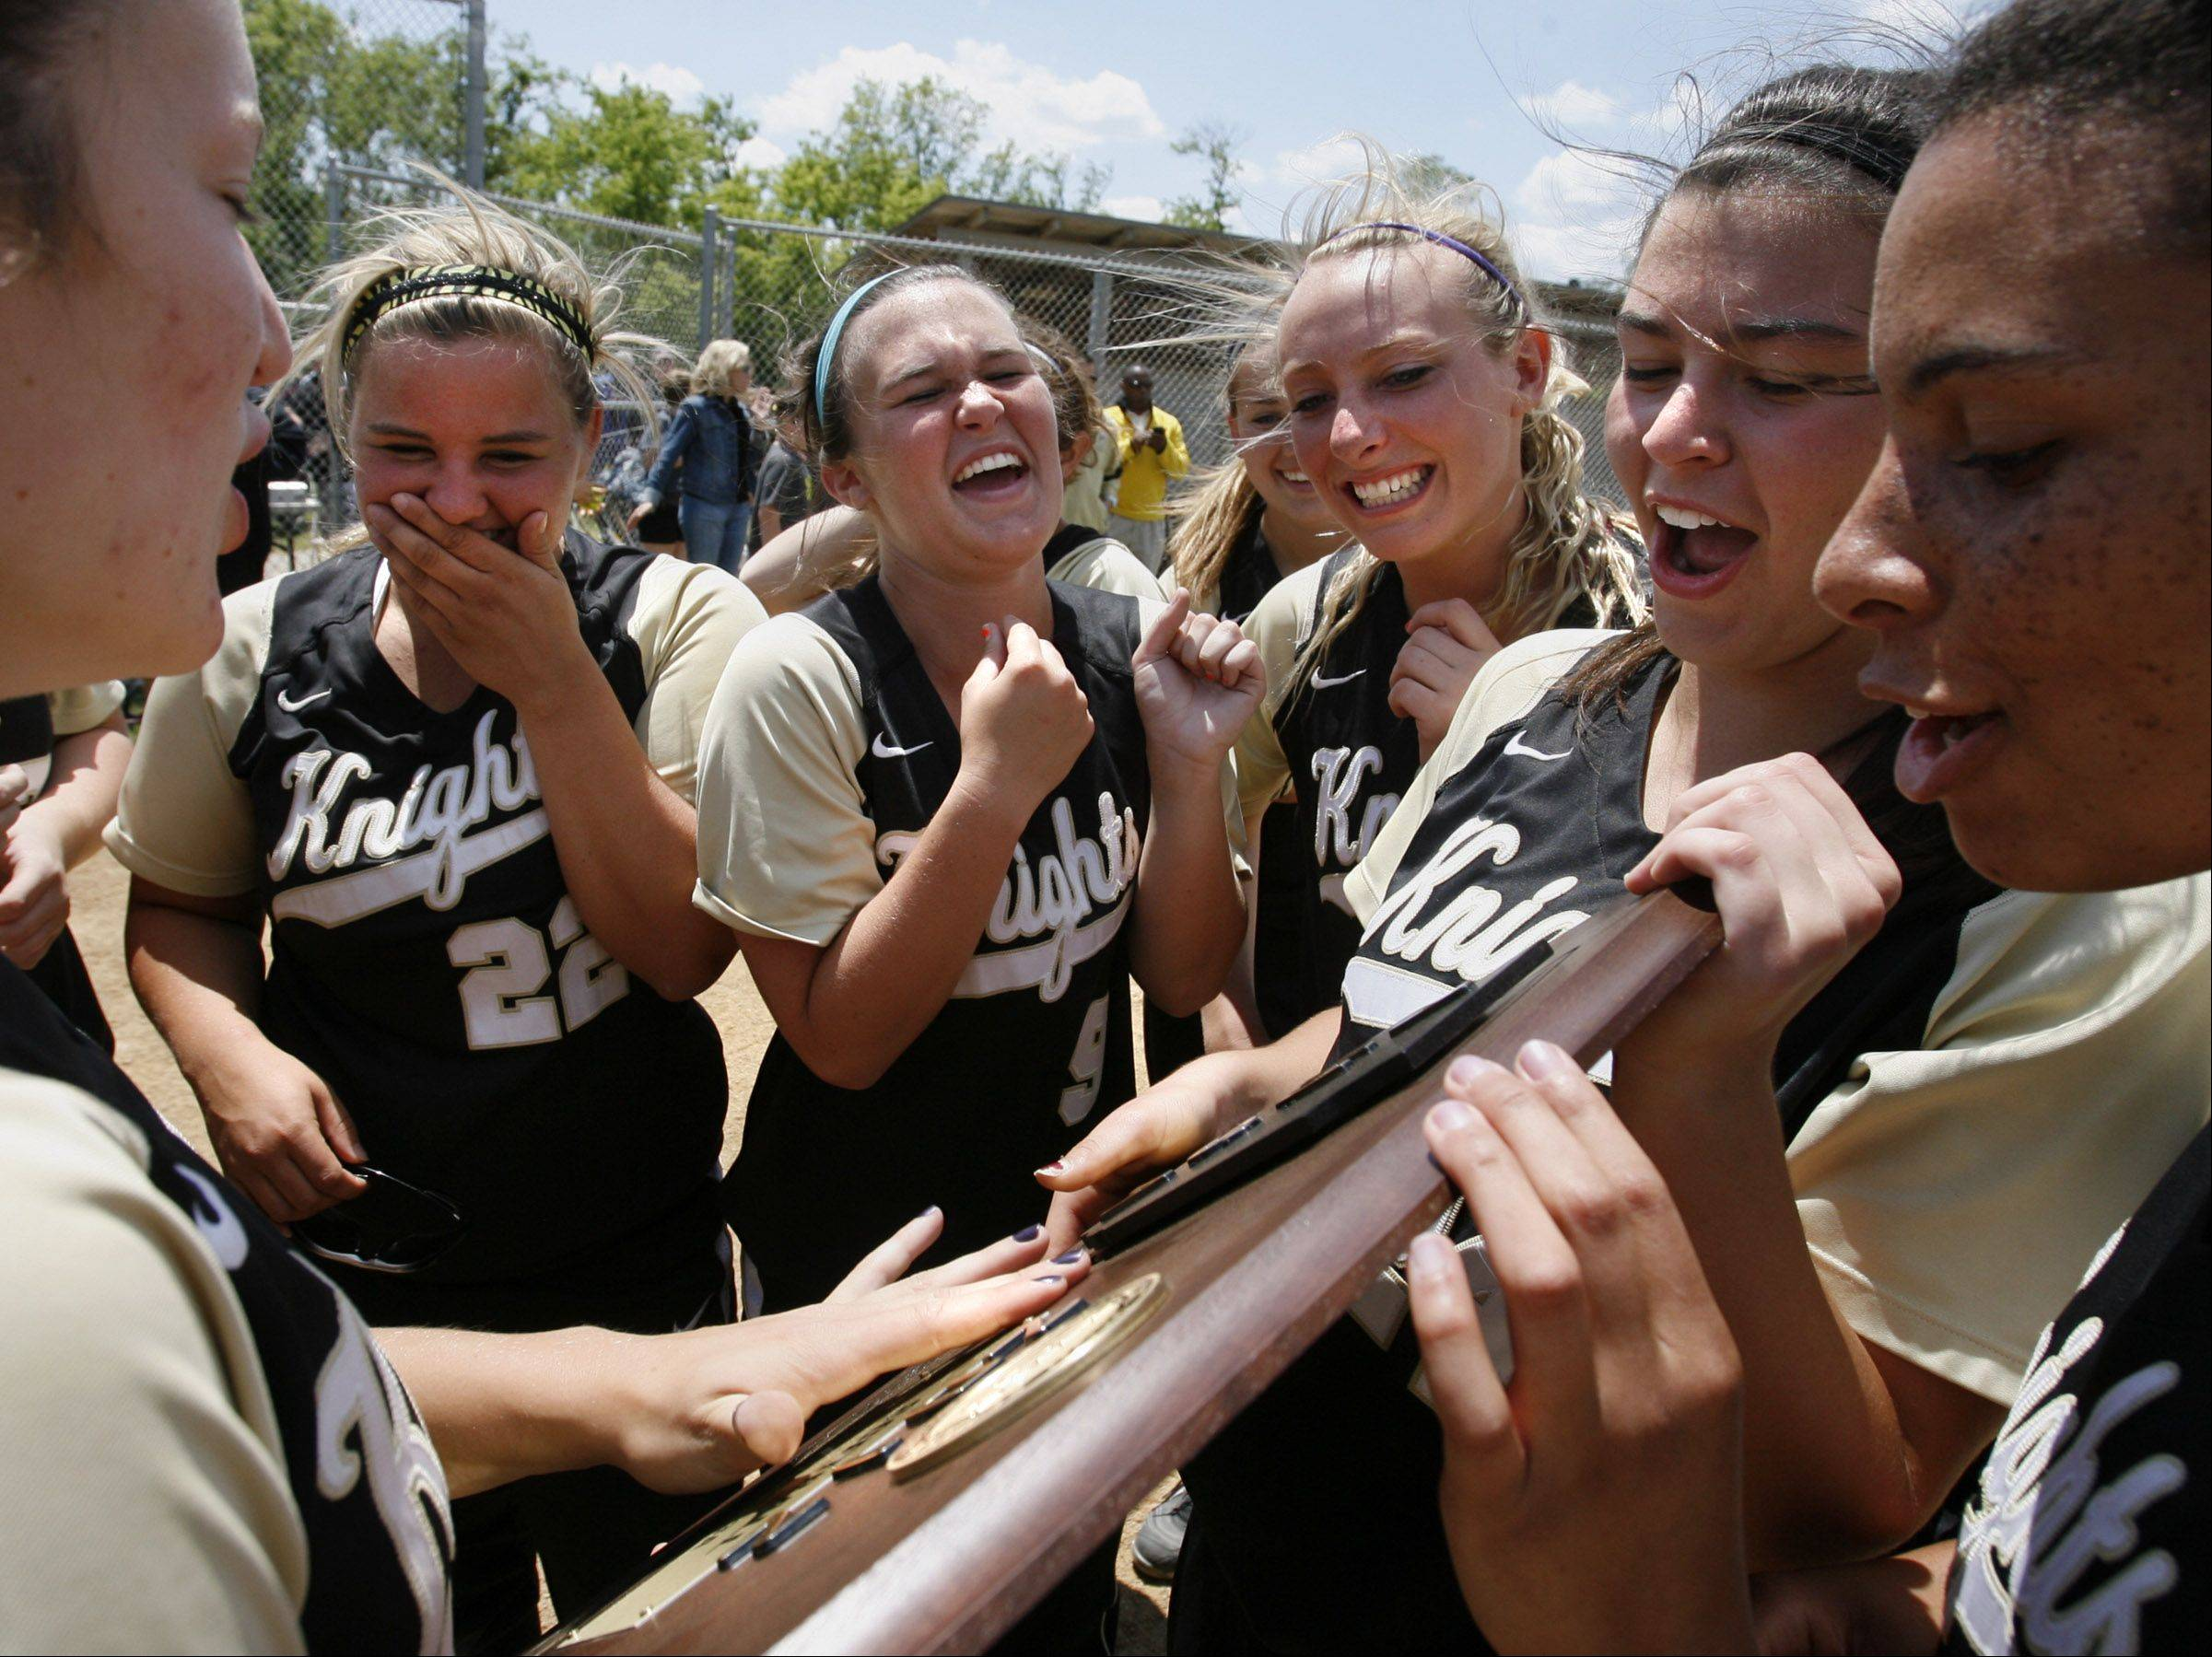 Grayslake North's softball team, including pitcher Kristina Gandy, second from right, Kelsey Borders, second from left (22), and Jessica Davis, center (9), celebrate and touch the Class 3A Lakes softball sectional final plaque after winning against Prairie Ridge in Lake Villa on Saturday.